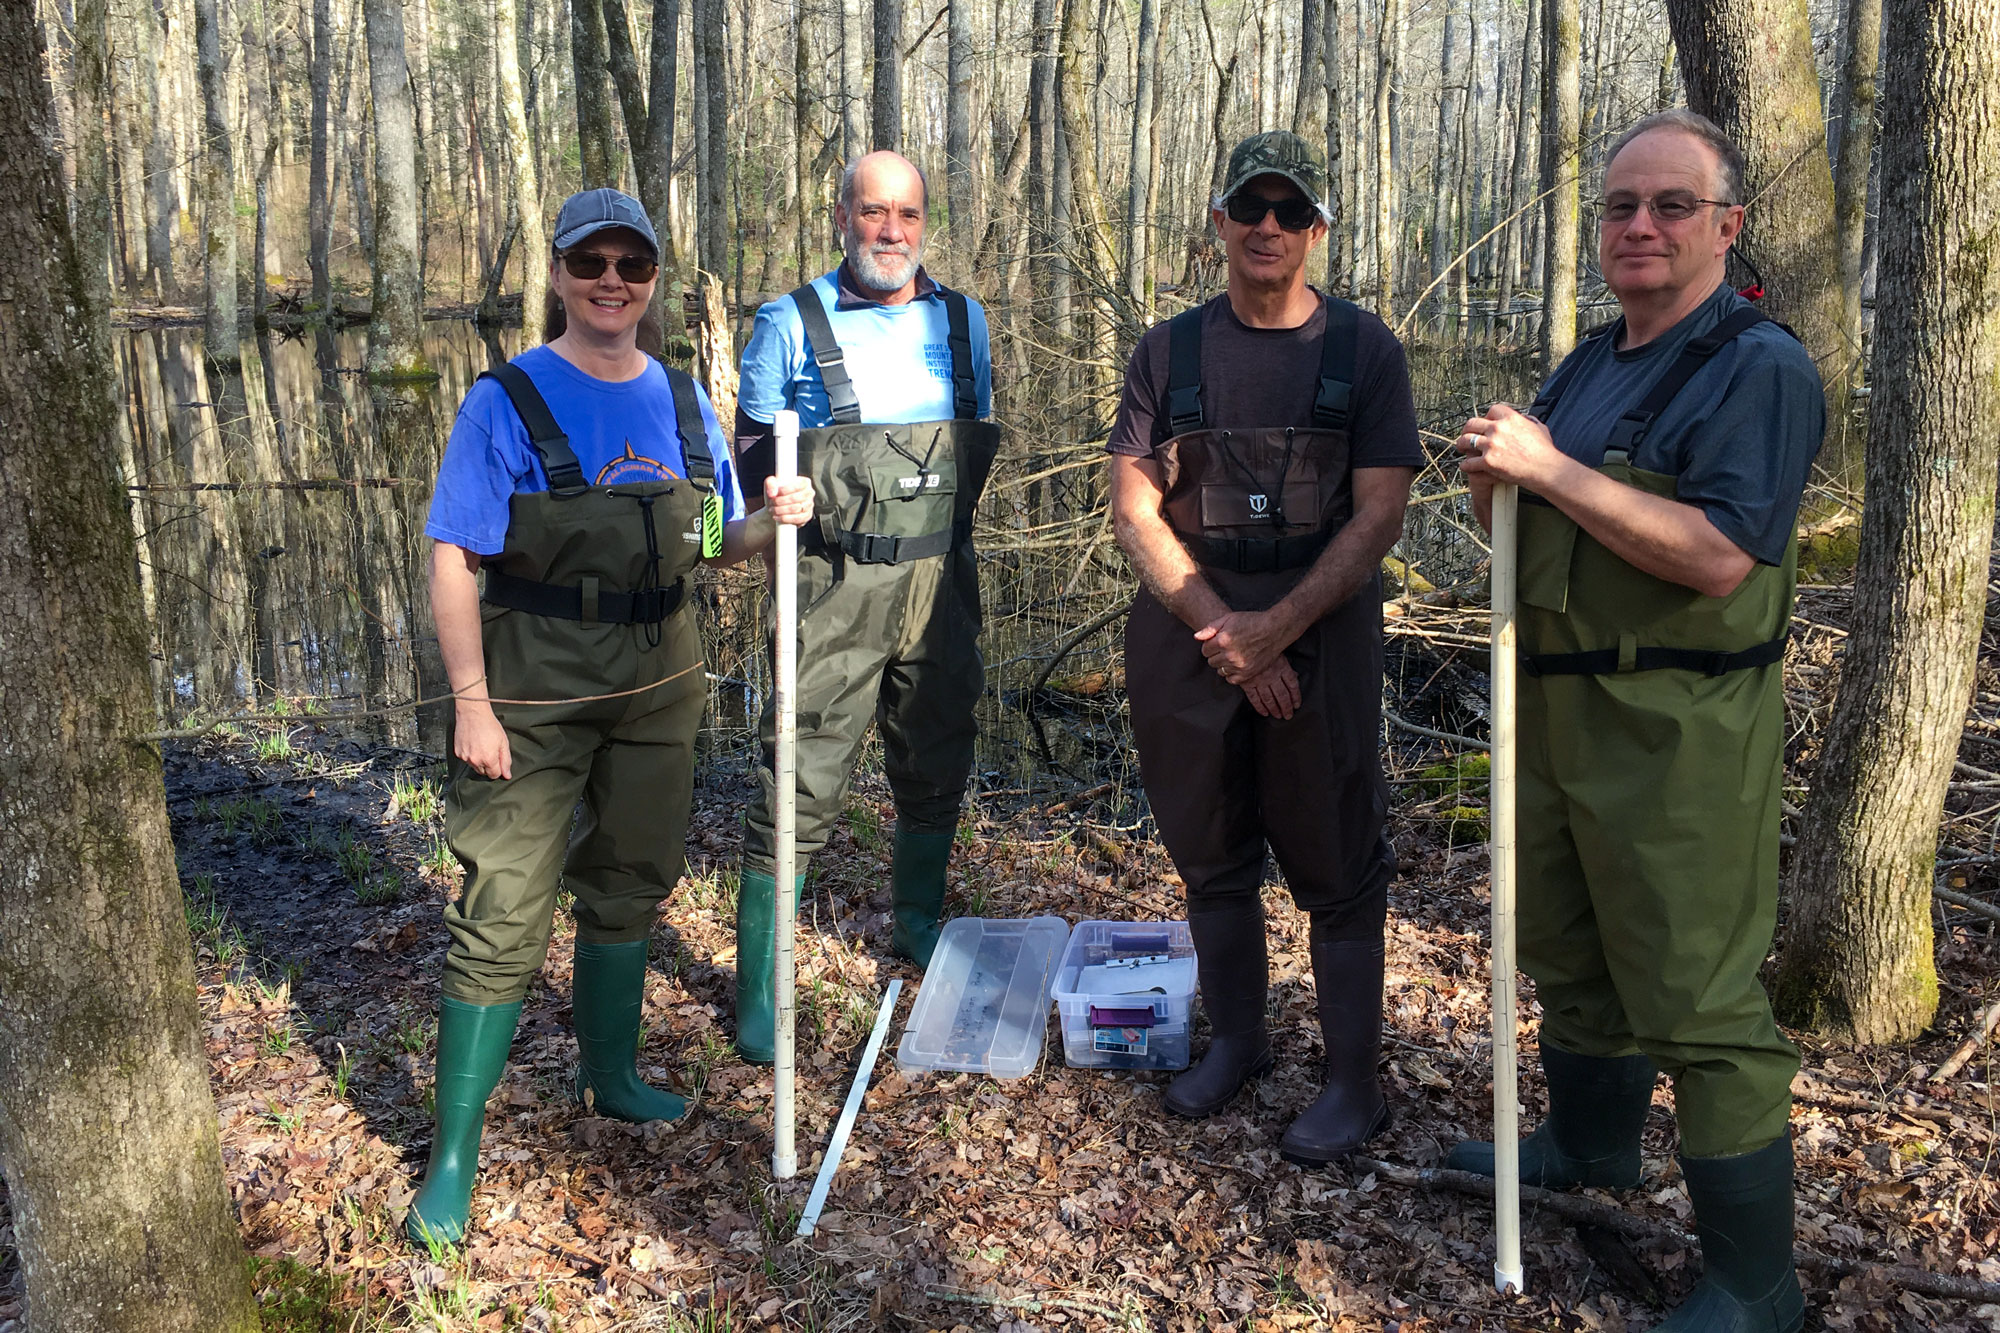 Community science volunteers pose for a photo after monitoring vernal ponds for vernal pond breeding amphibians in the Smokies